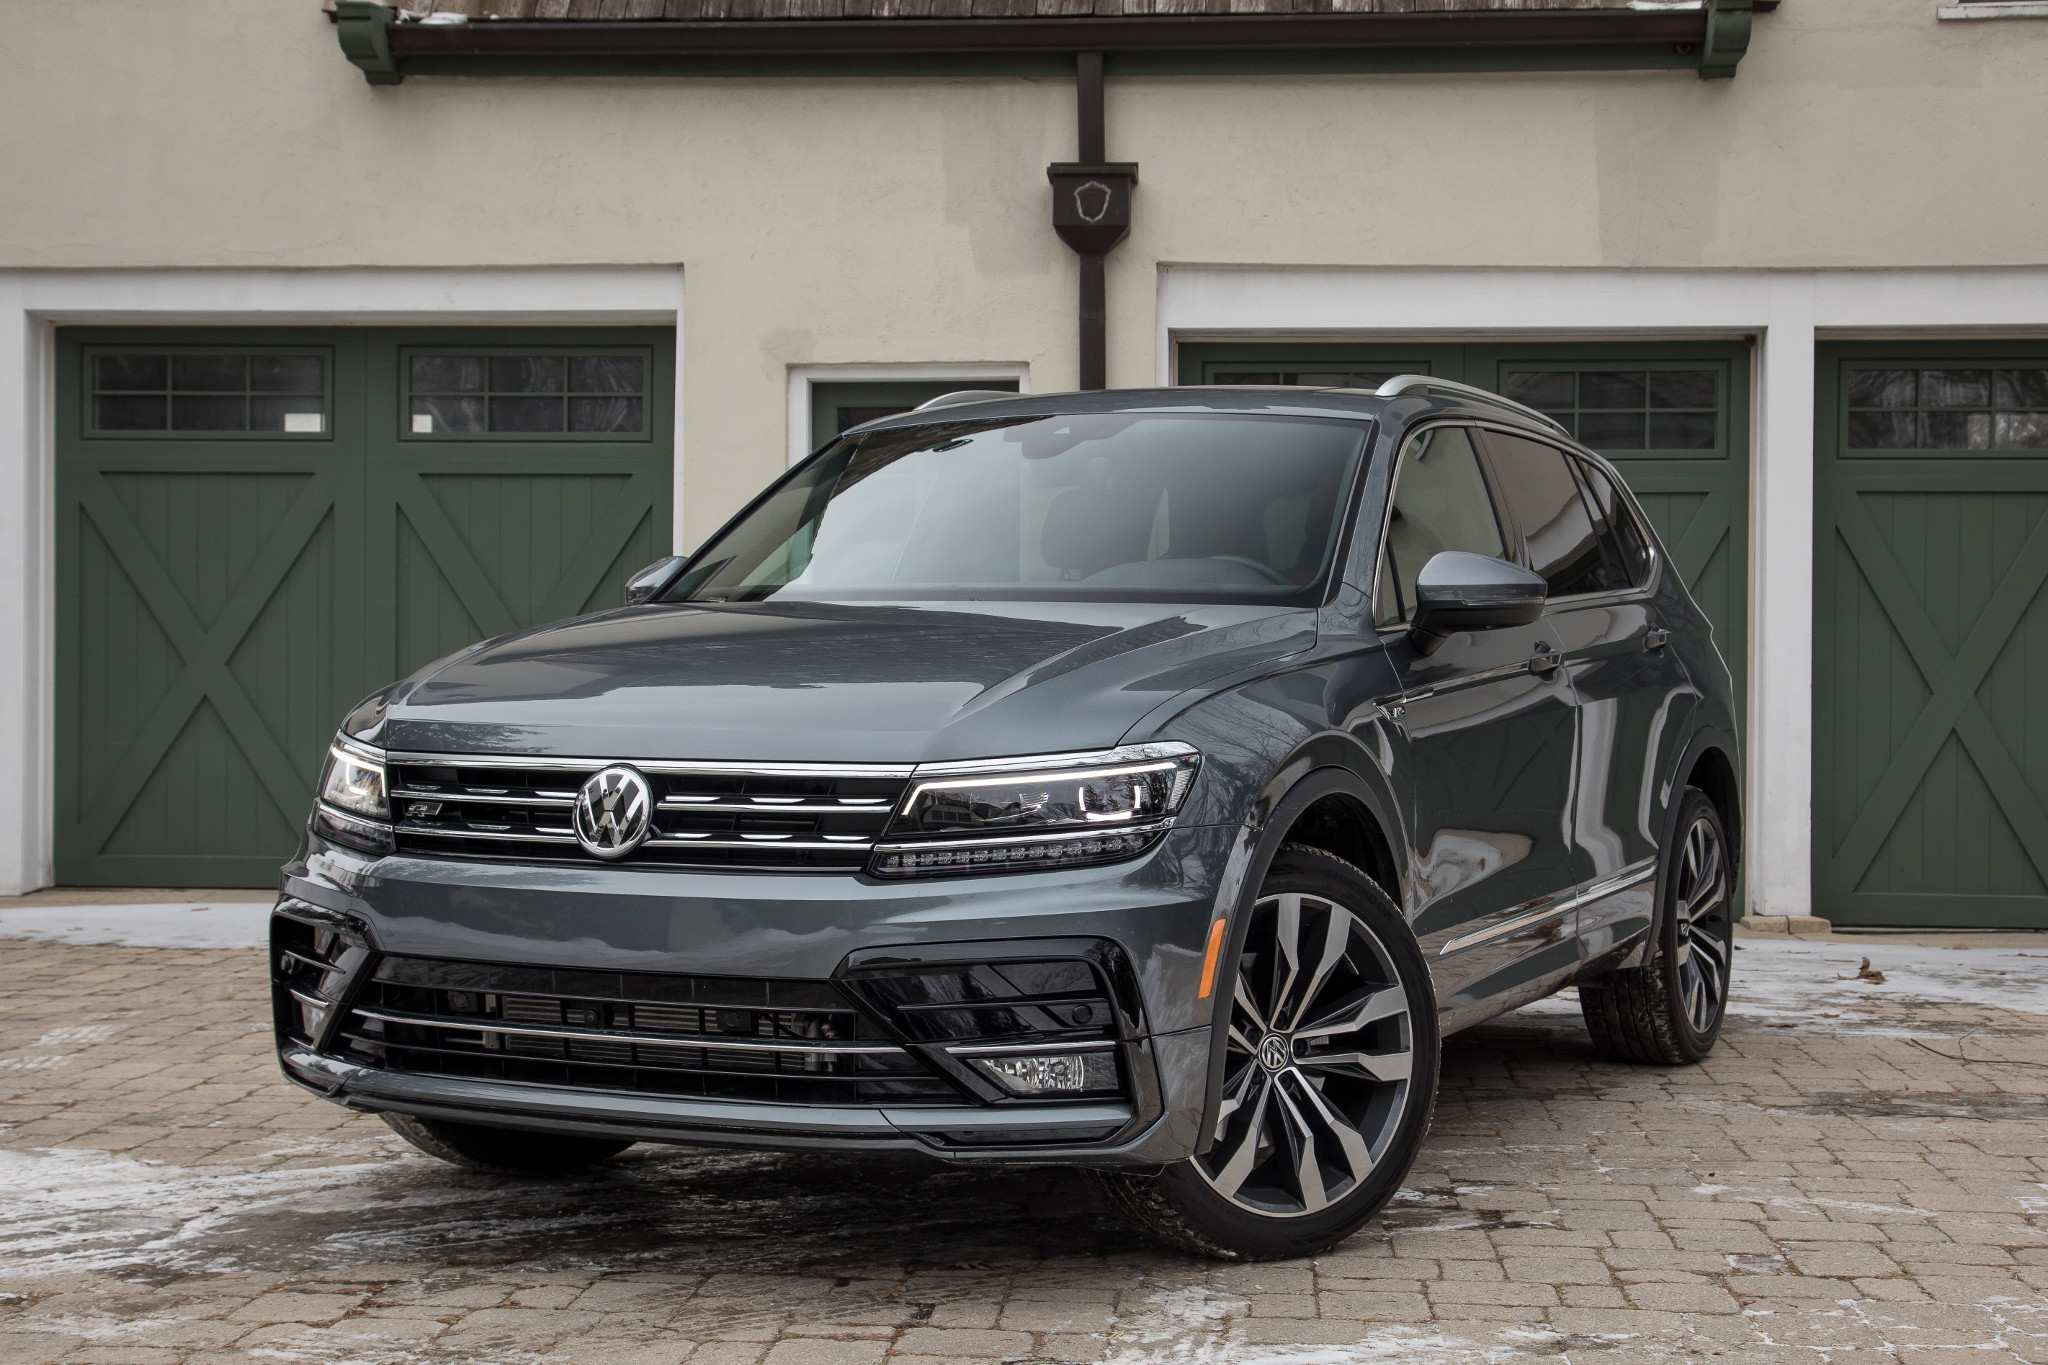 22 A Volkswagen Tiguan 2020 Price And Release Date